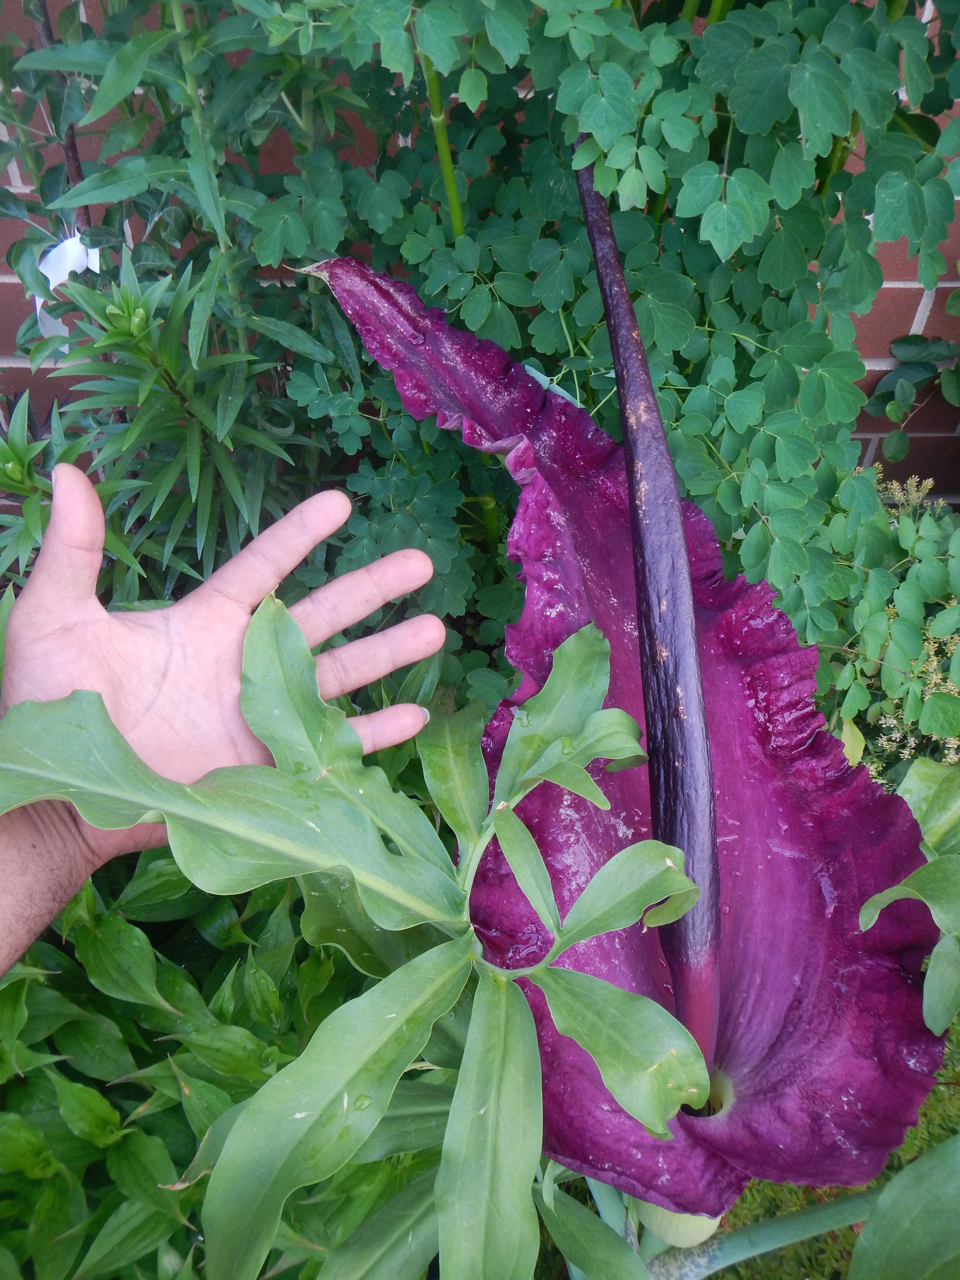 Aroid Award   2018 Mossies  Dragon Arum ( Dracunculus vulgaris )  I finally bought a Dragon Arum tuber at the 2016  Chicago Flower and Garden Show  after years of wanting one. It grew a little, then went dormant around July. There was no sign of life until last winter in the cold frame when a shoot emerged.  By spring it was thick, tall, and obviously a flowering shoot! The meter long flower stalk unfurled a massive, funky, deep maroonish purple spathe and spadix. The dragon had risen!